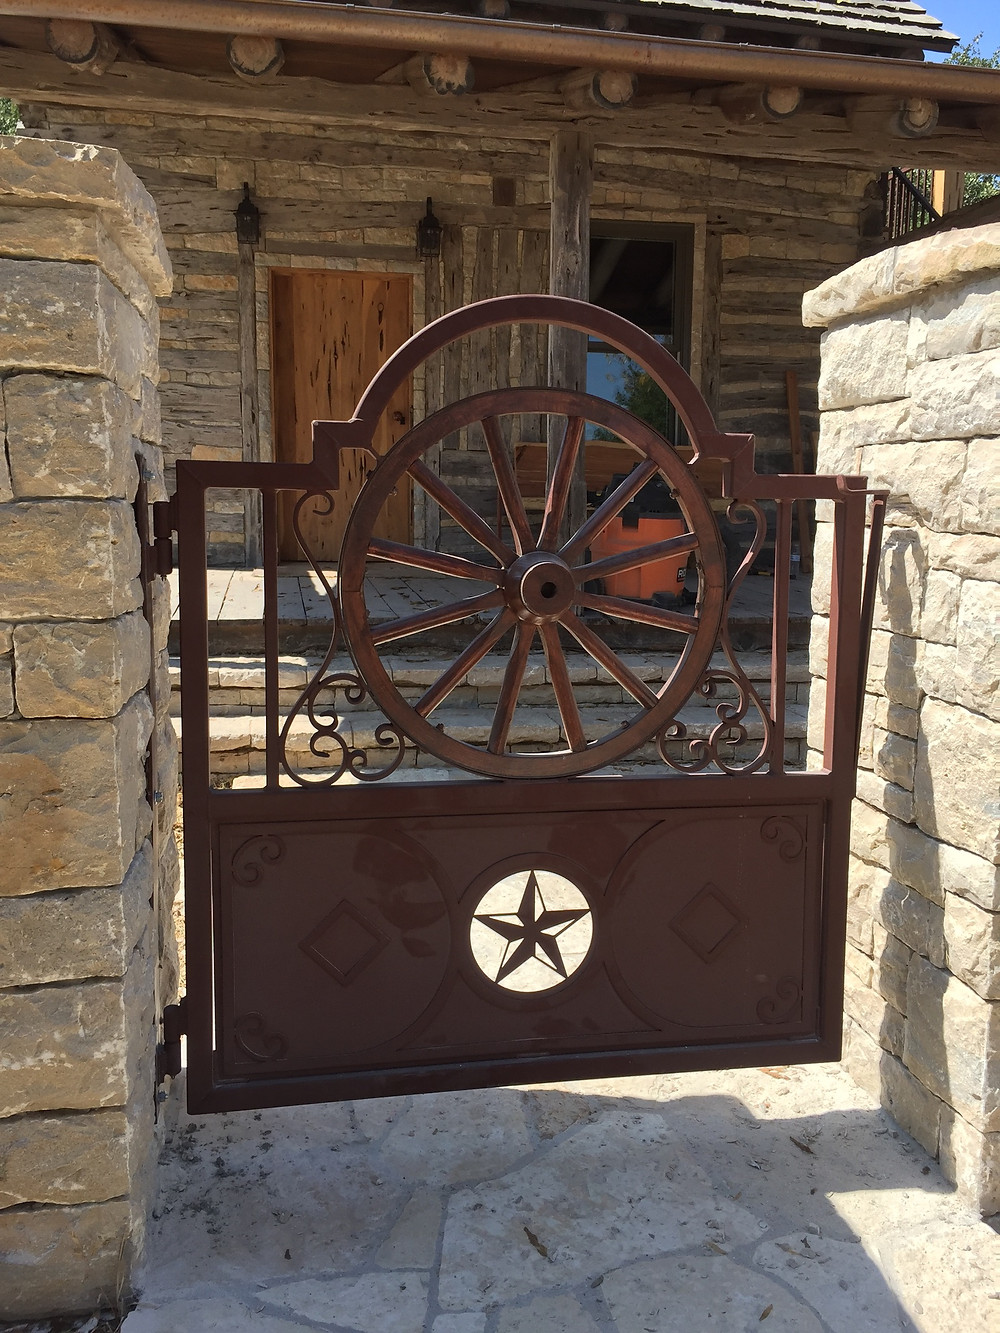 Wagon wheel metal gate restoration at a Comanche Peak home in Granbury, TX. Gate attached to rock fencing.